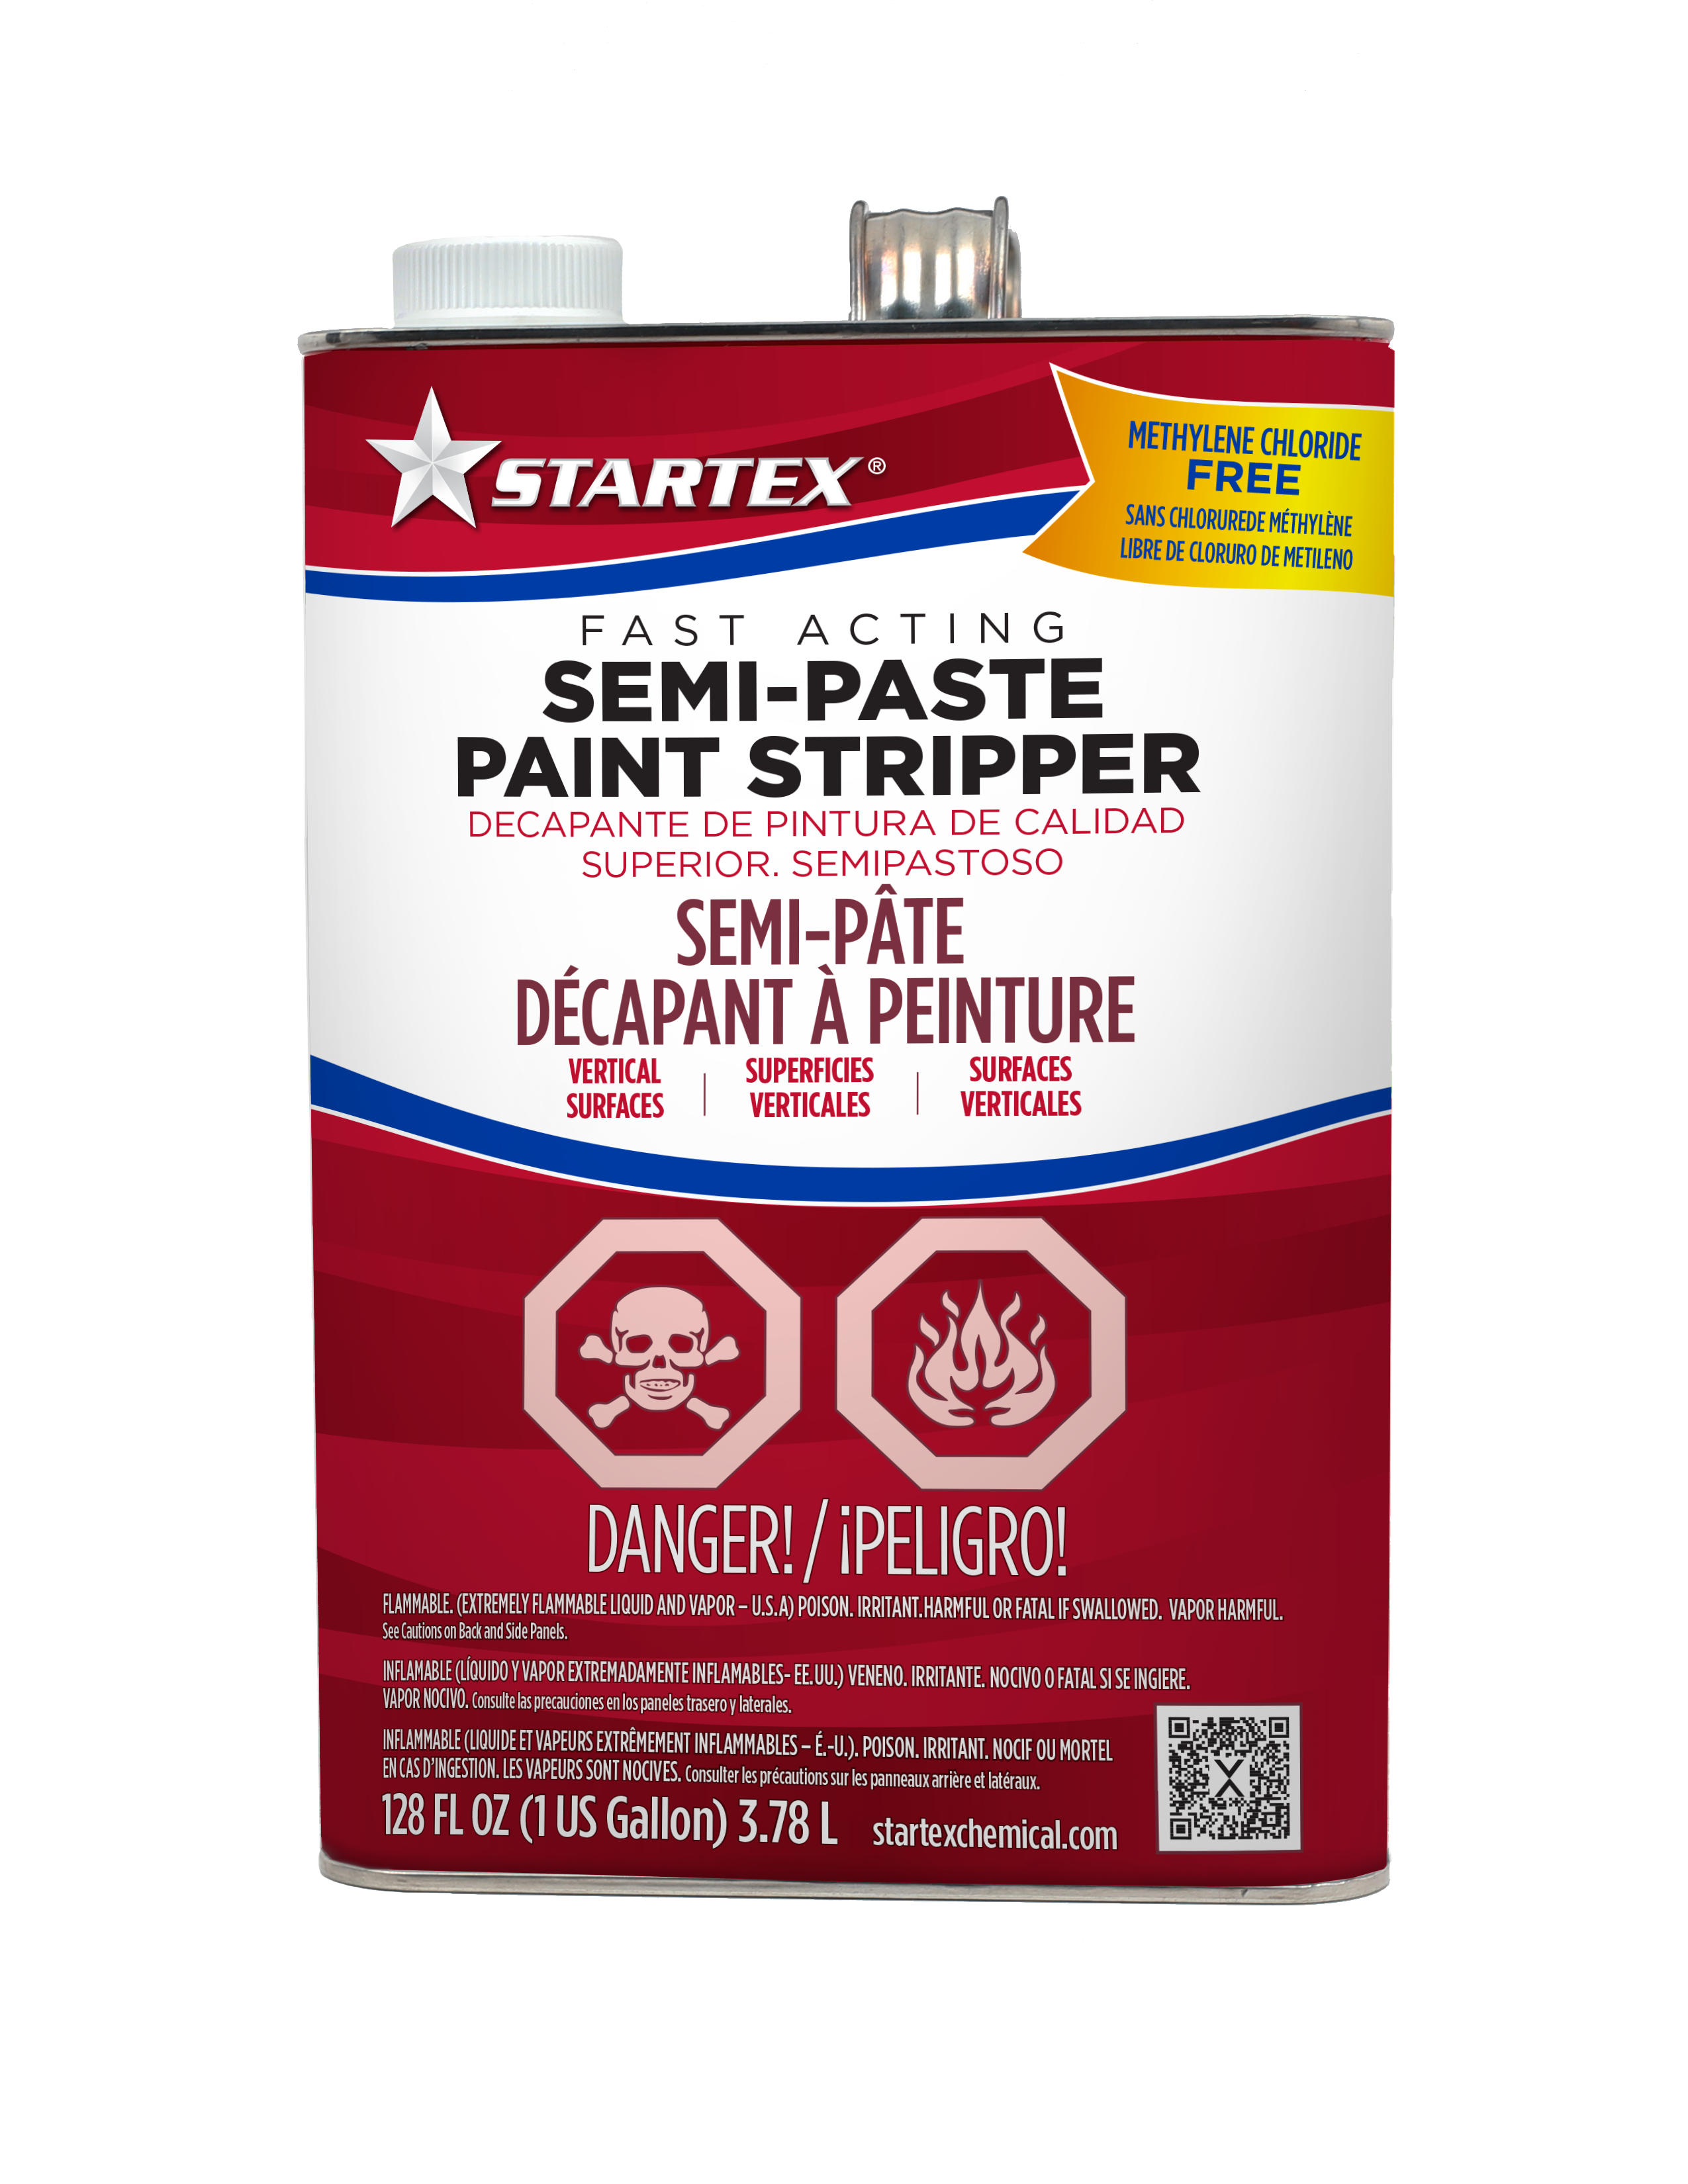 meythlene chloride free semi past paint stripper